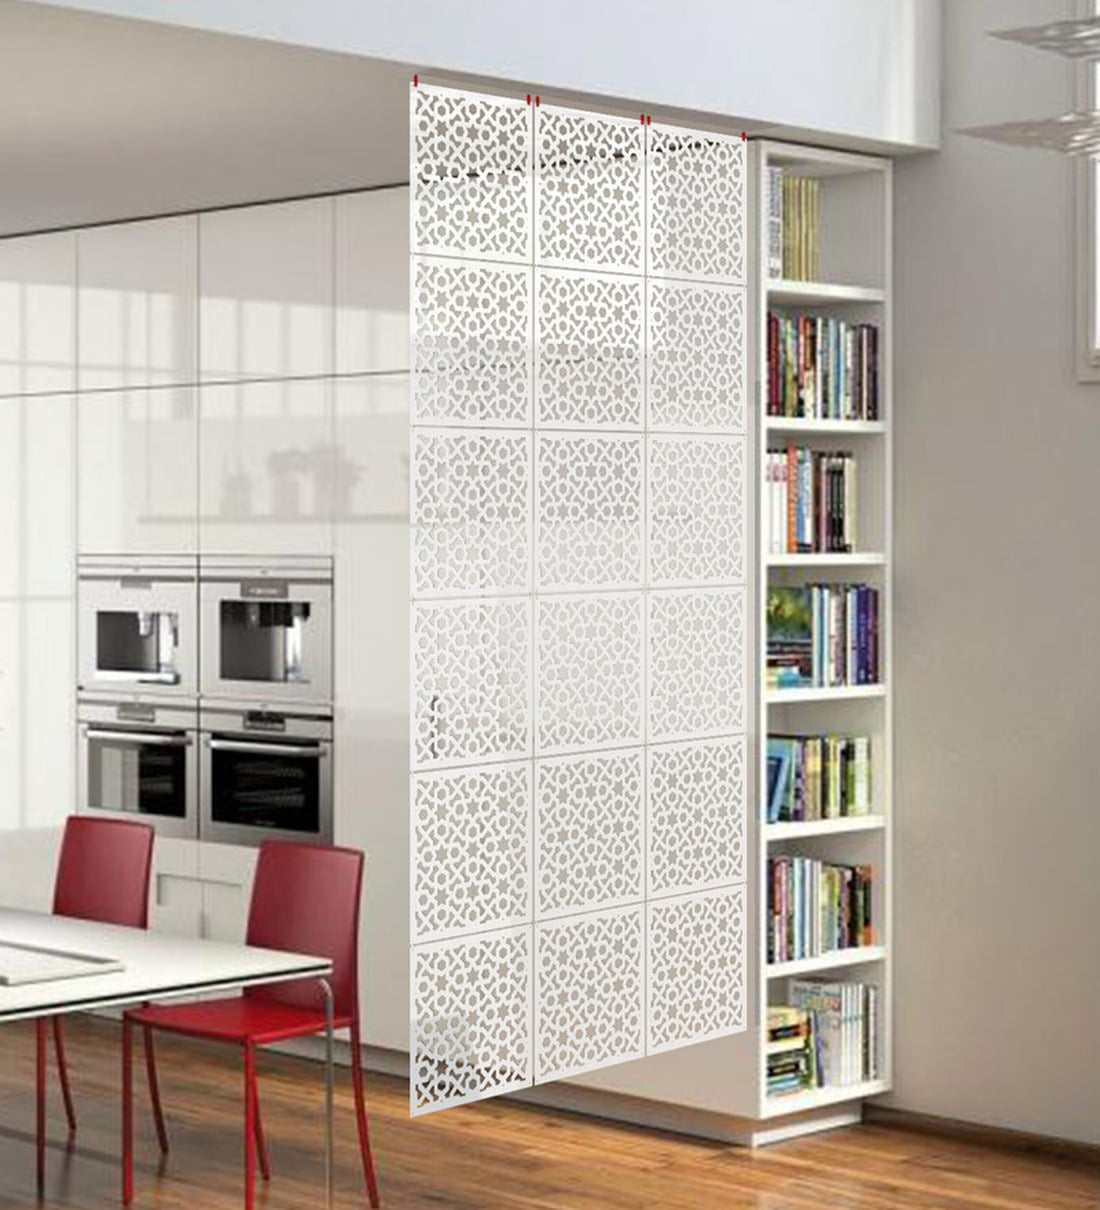 acrylic hanging room divider in white colour